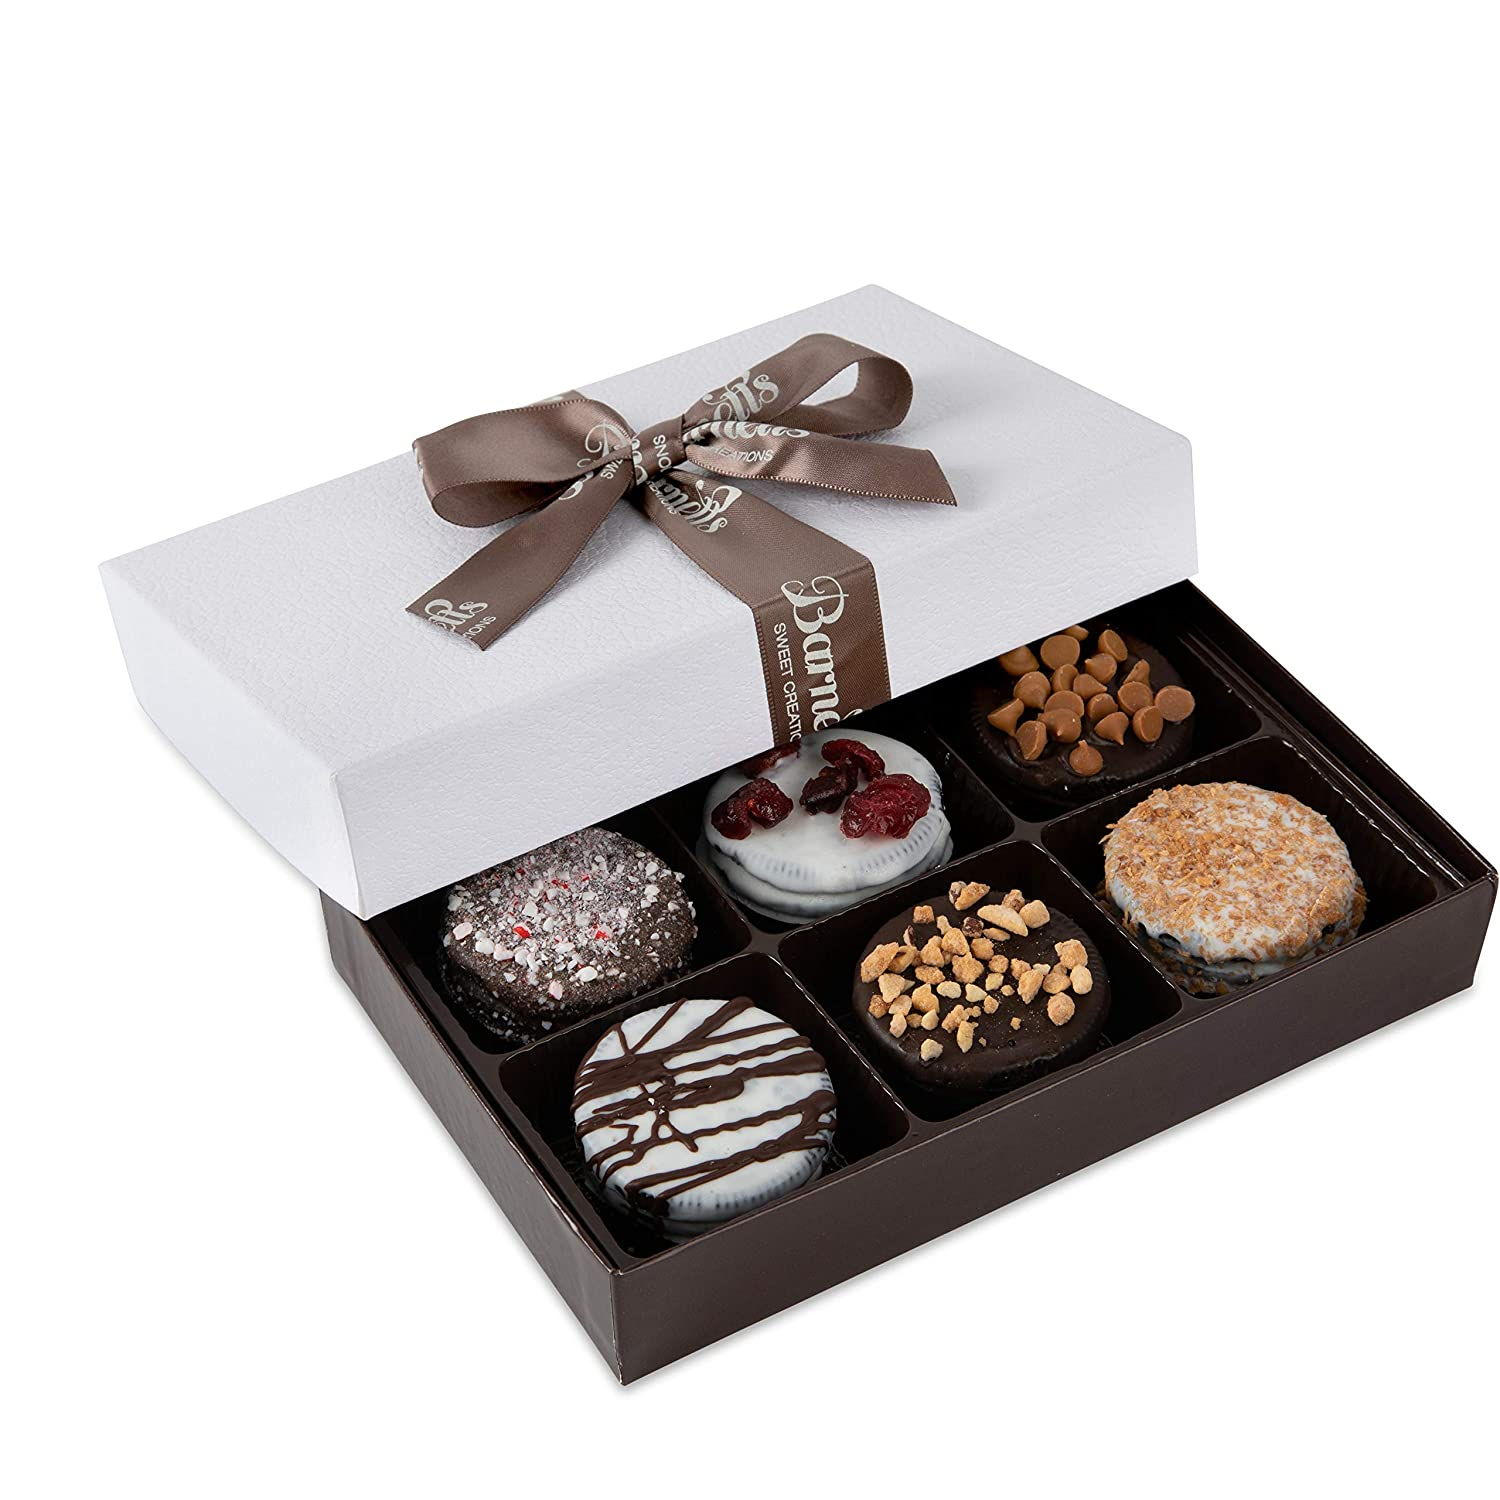 Barnetts Chocolate Cookies Favors Gift Box Sampler, Gourmet ...